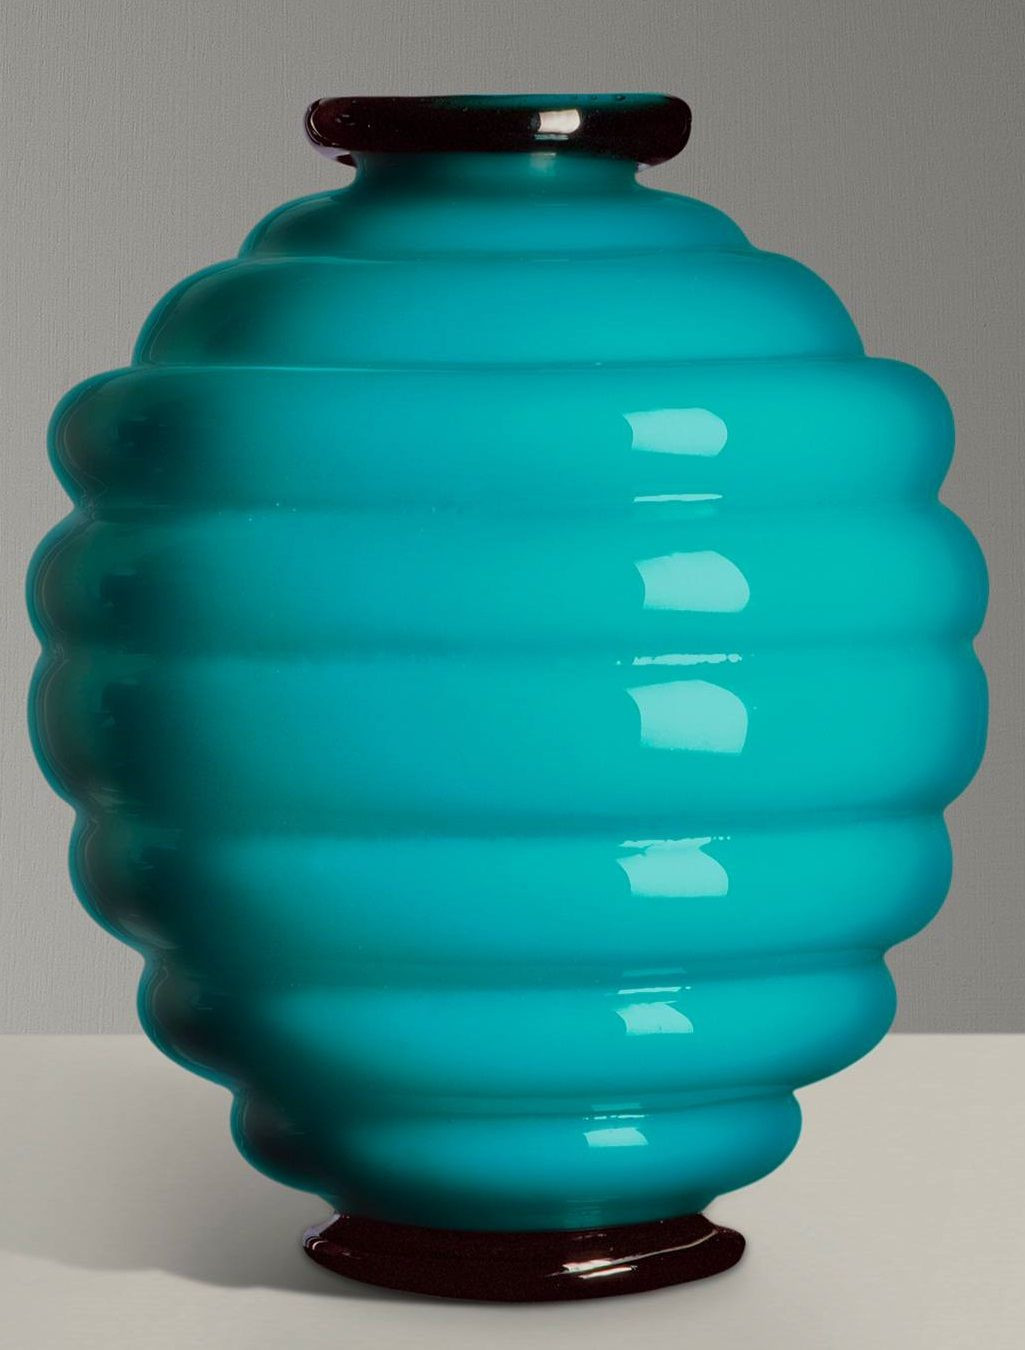 Murano Hand Blown Glass Vase Of 1930 Venini Glass Vase by Napoleone Martinuzzi Murano Glass Regarding 1930 Venini Glass Vase by Napoleone Martinuzzi A· Venetian Glassmurano Glassglass Vaseporcelain Vasehand Blown